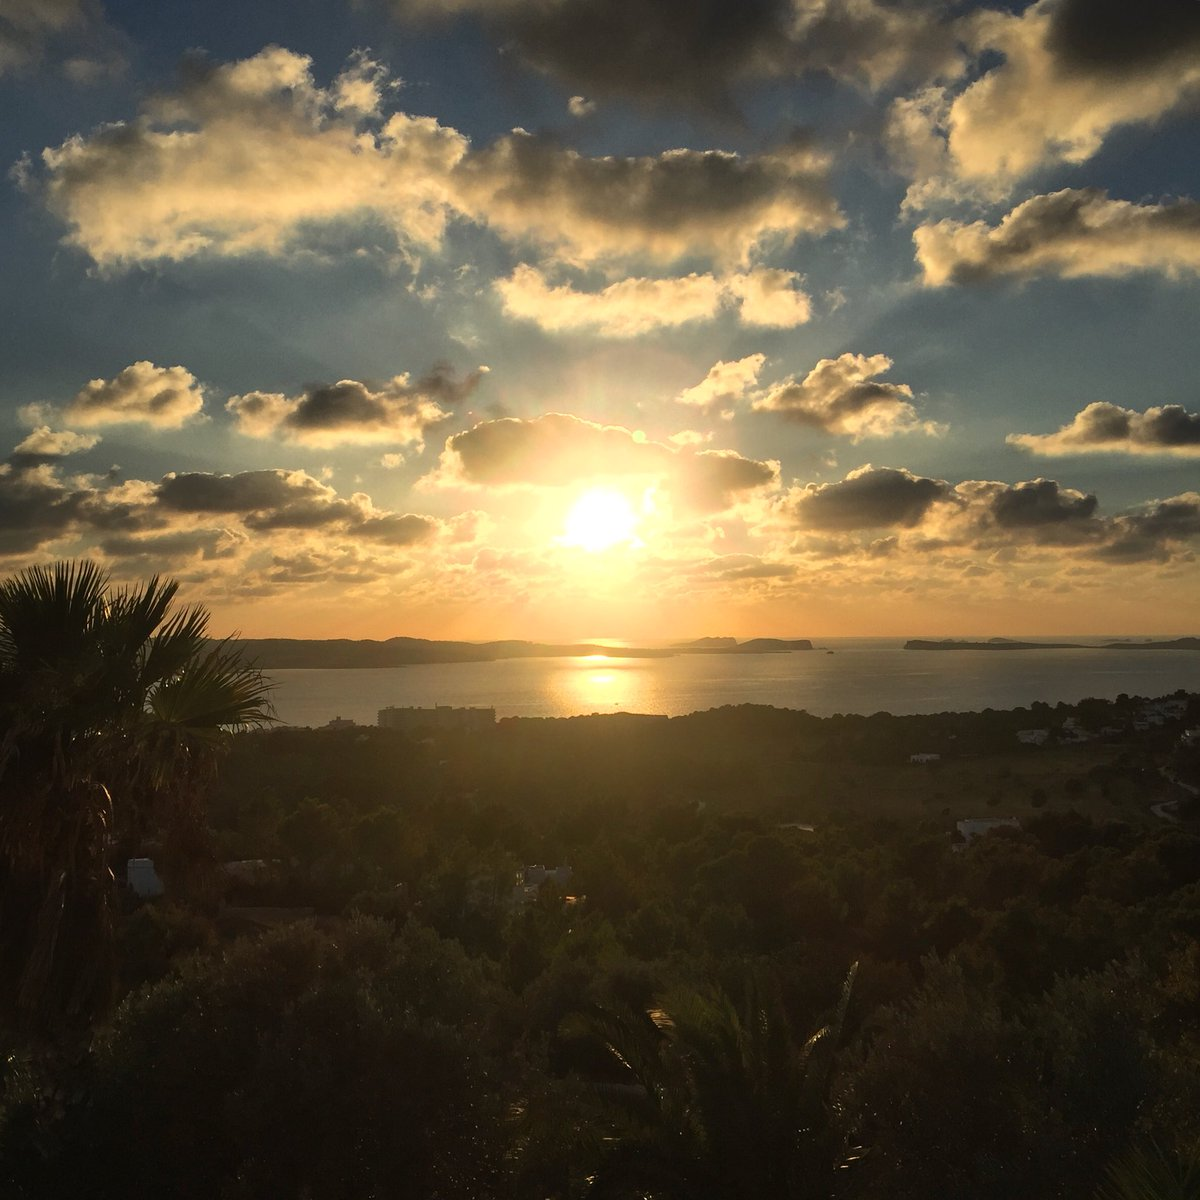 An #Ibiza Sunset never fails to put a smile on my face, especially one as beautiful as this #November<br>http://pic.twitter.com/bObRFqfGz4